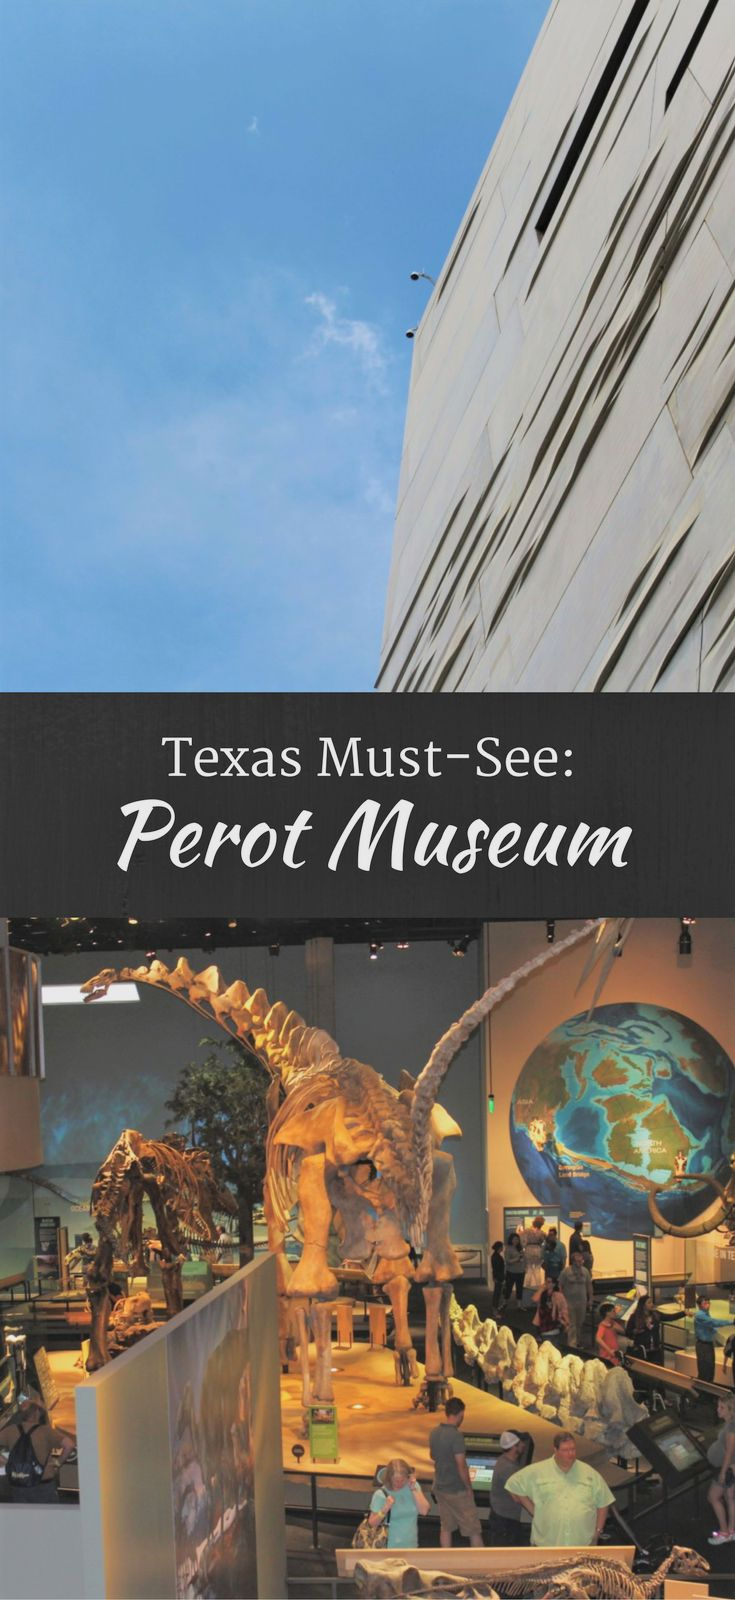 The Perot Museum in Dallas is one of the things you must do not only in Dallas but also Texas. It is one of the most architecturally astounding buildings on the planet!